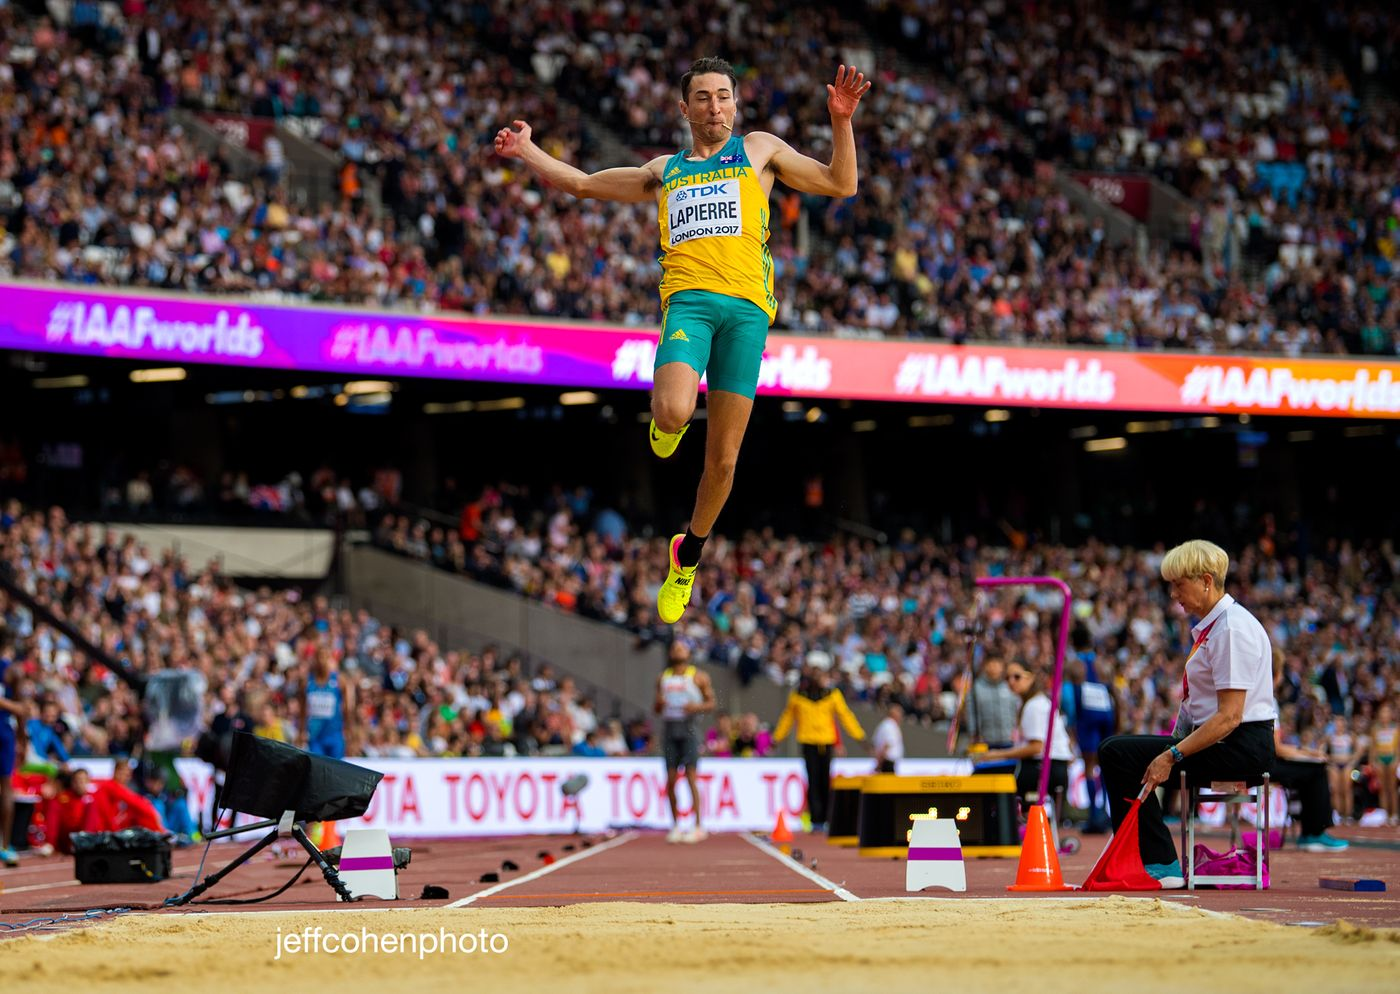 2017-IAAF-WC-London-day-1-lapierre-ljm-jeff-cohen-photo--3205-web.jpg